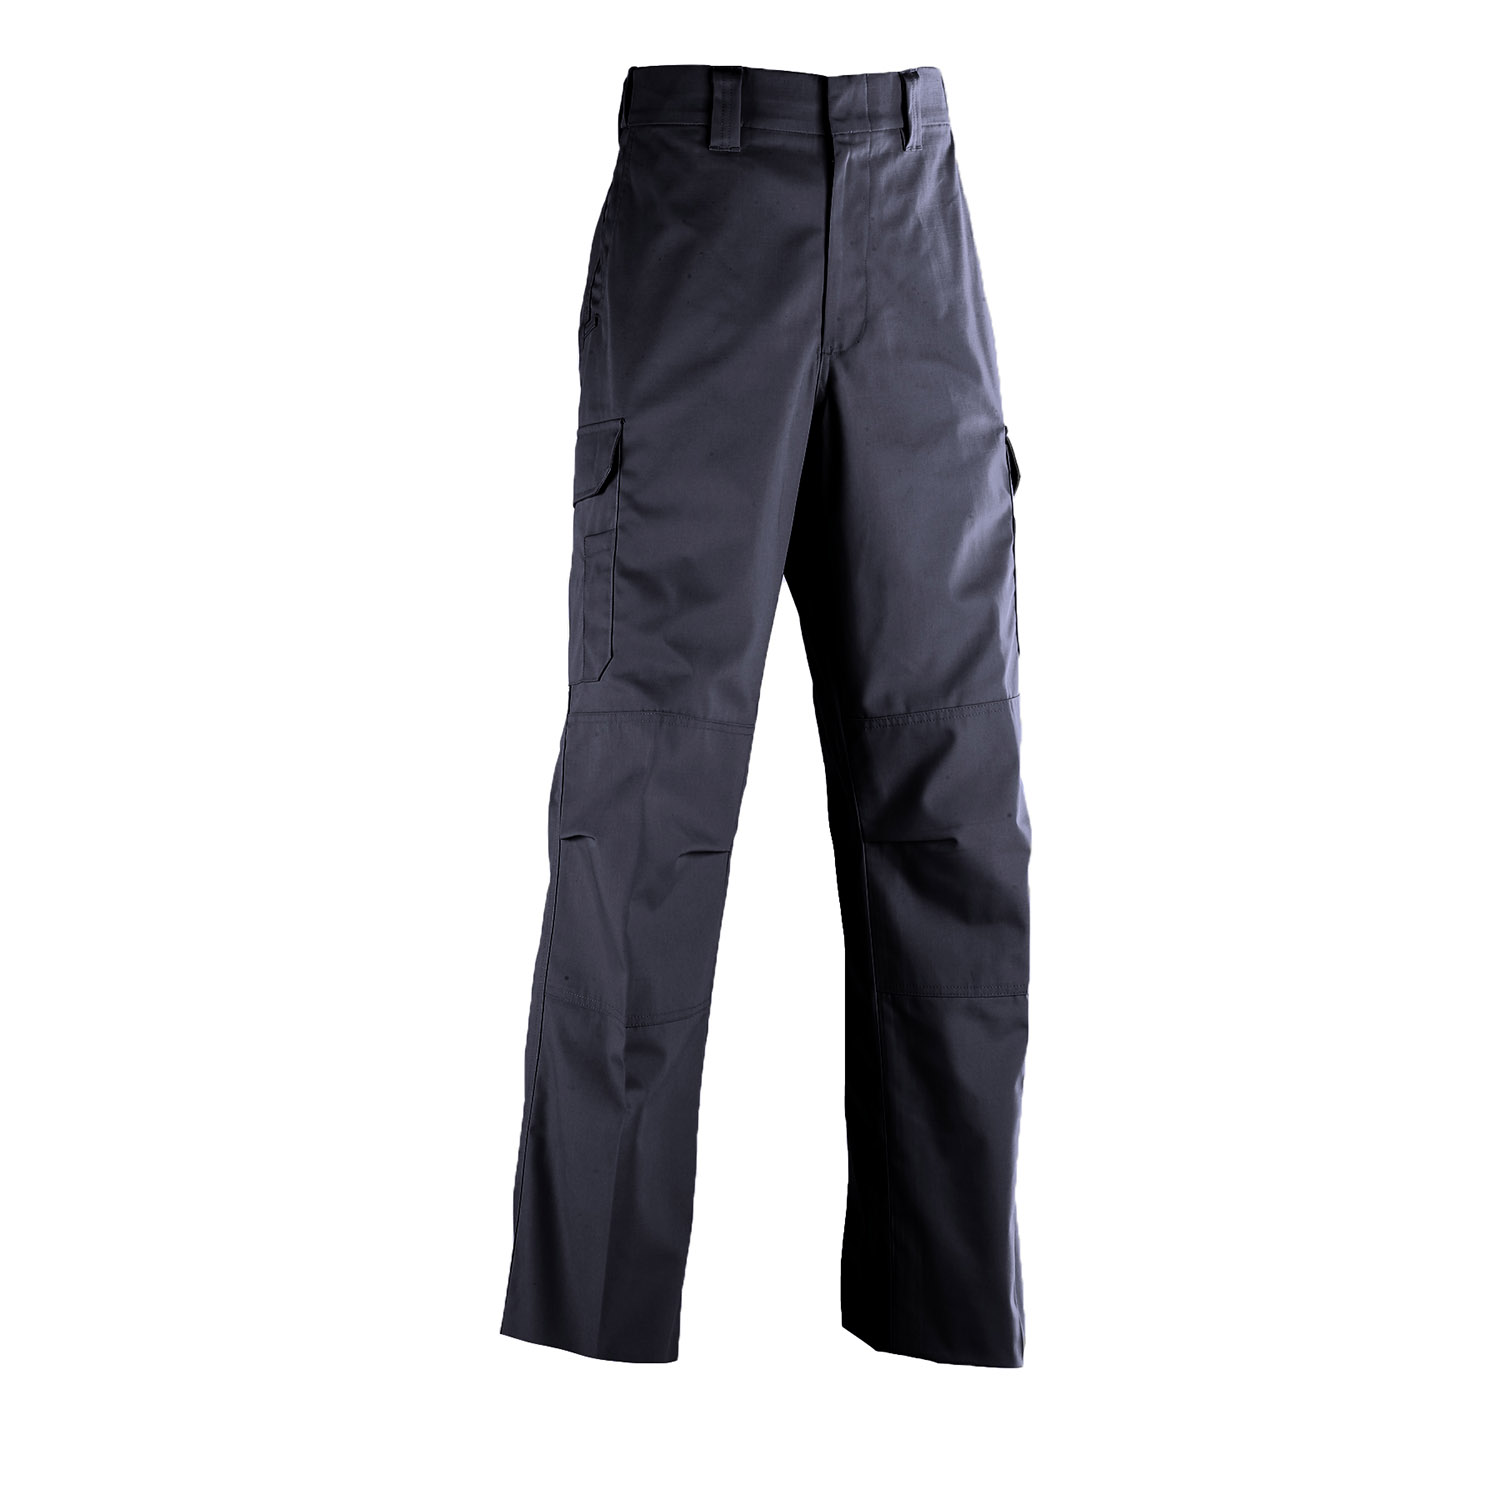 Elbeco Ladies Choice Ripstop ADU Trousers